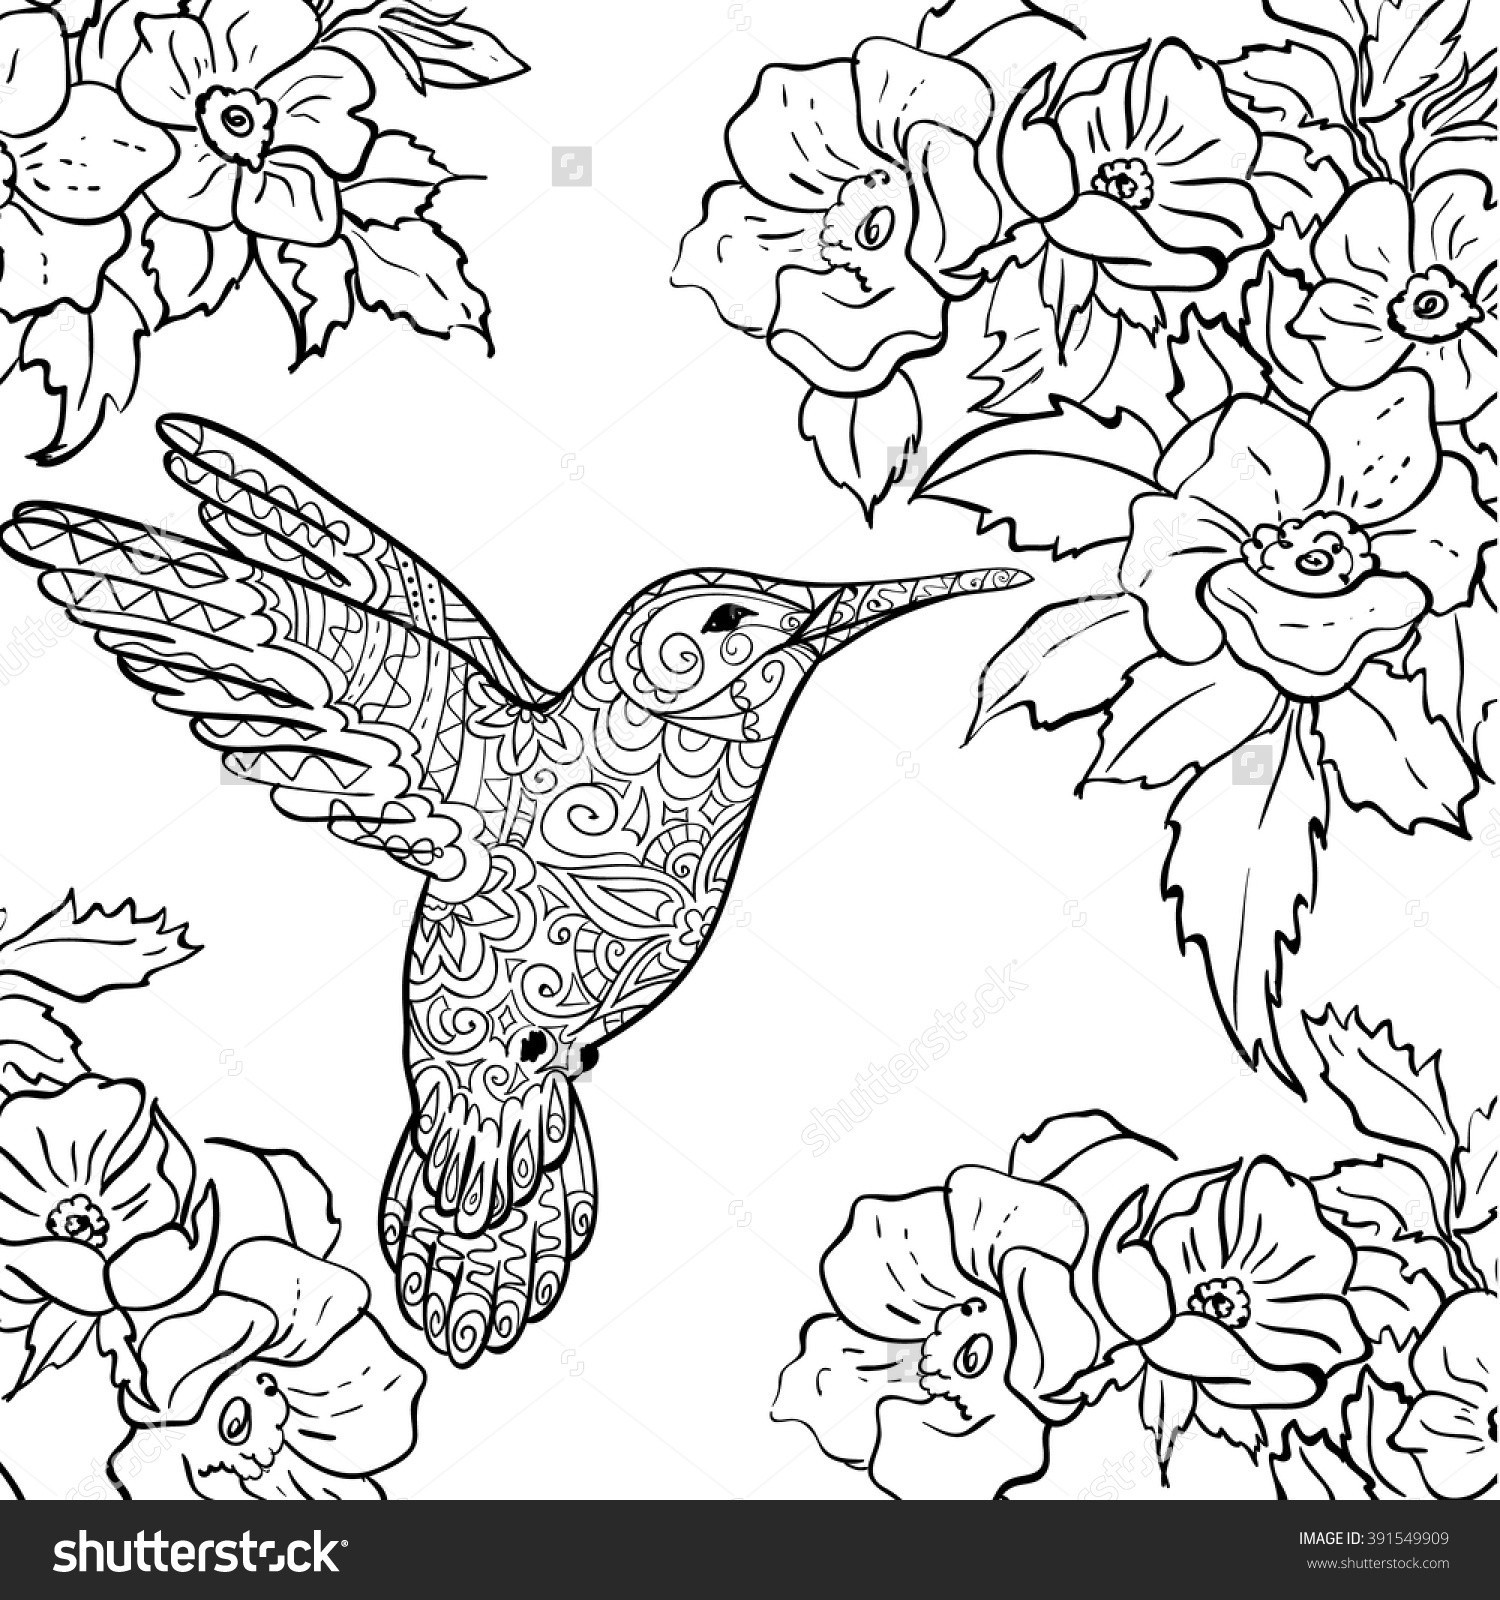 1500x1600 Hummingbird Coloring Page